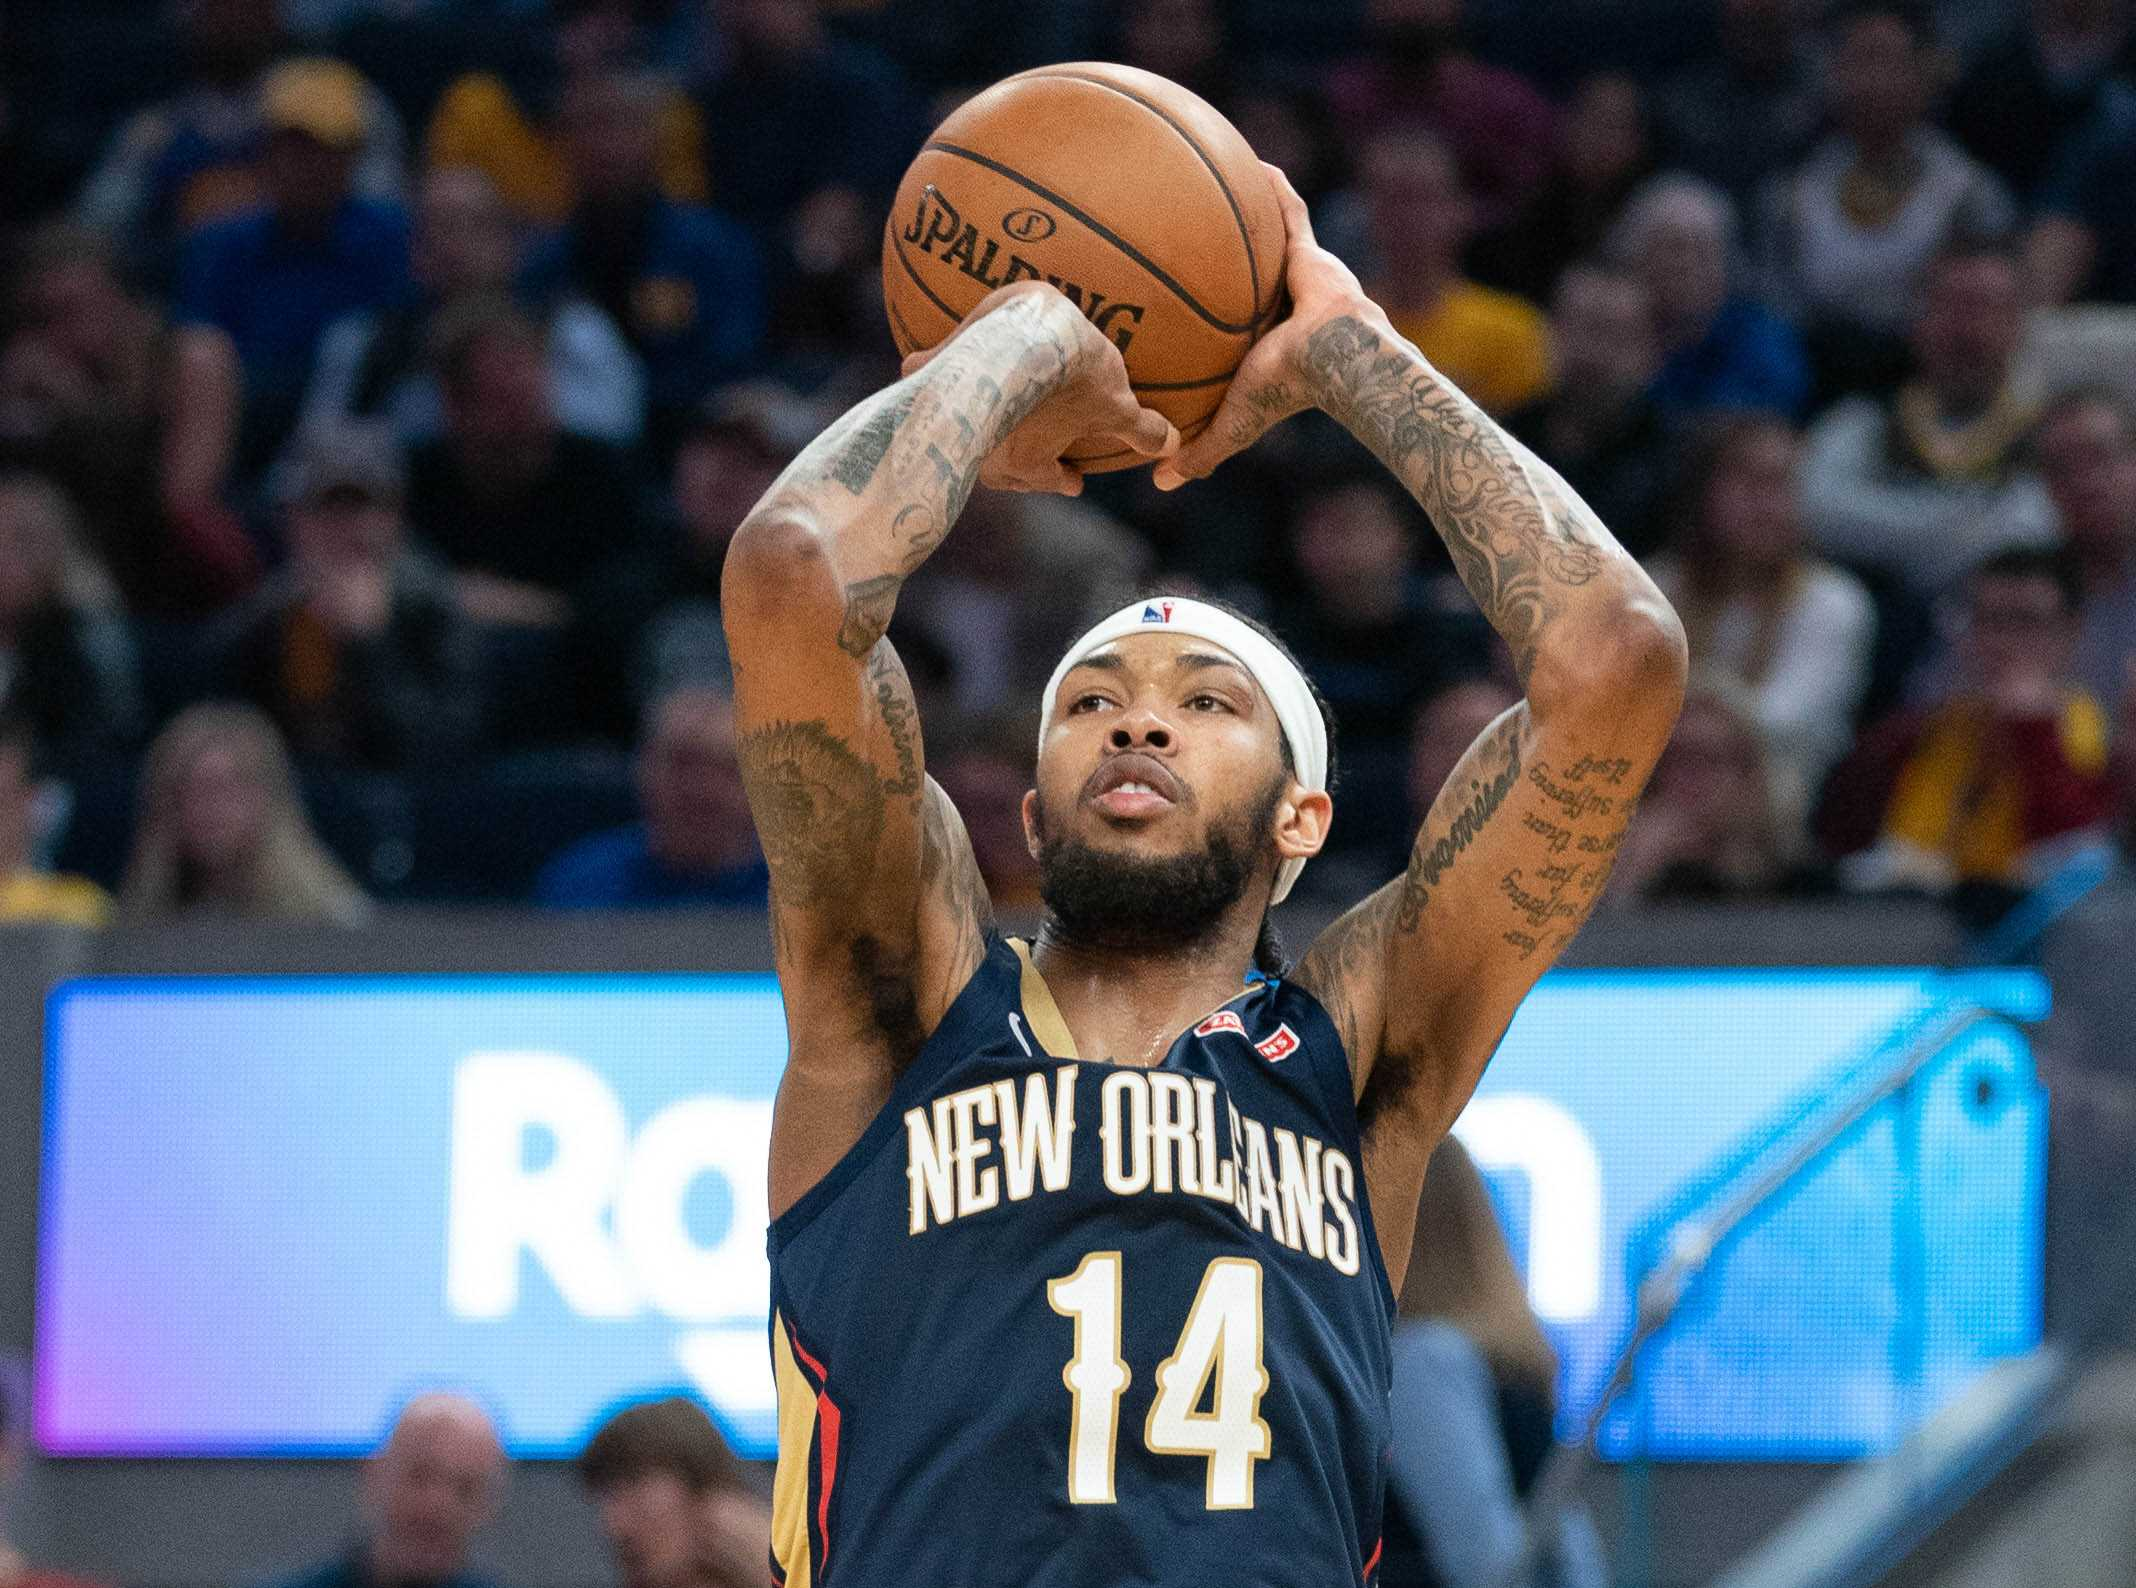 New Orleans and Brandon Ingram agree to 5 years, 158 million dollar deal